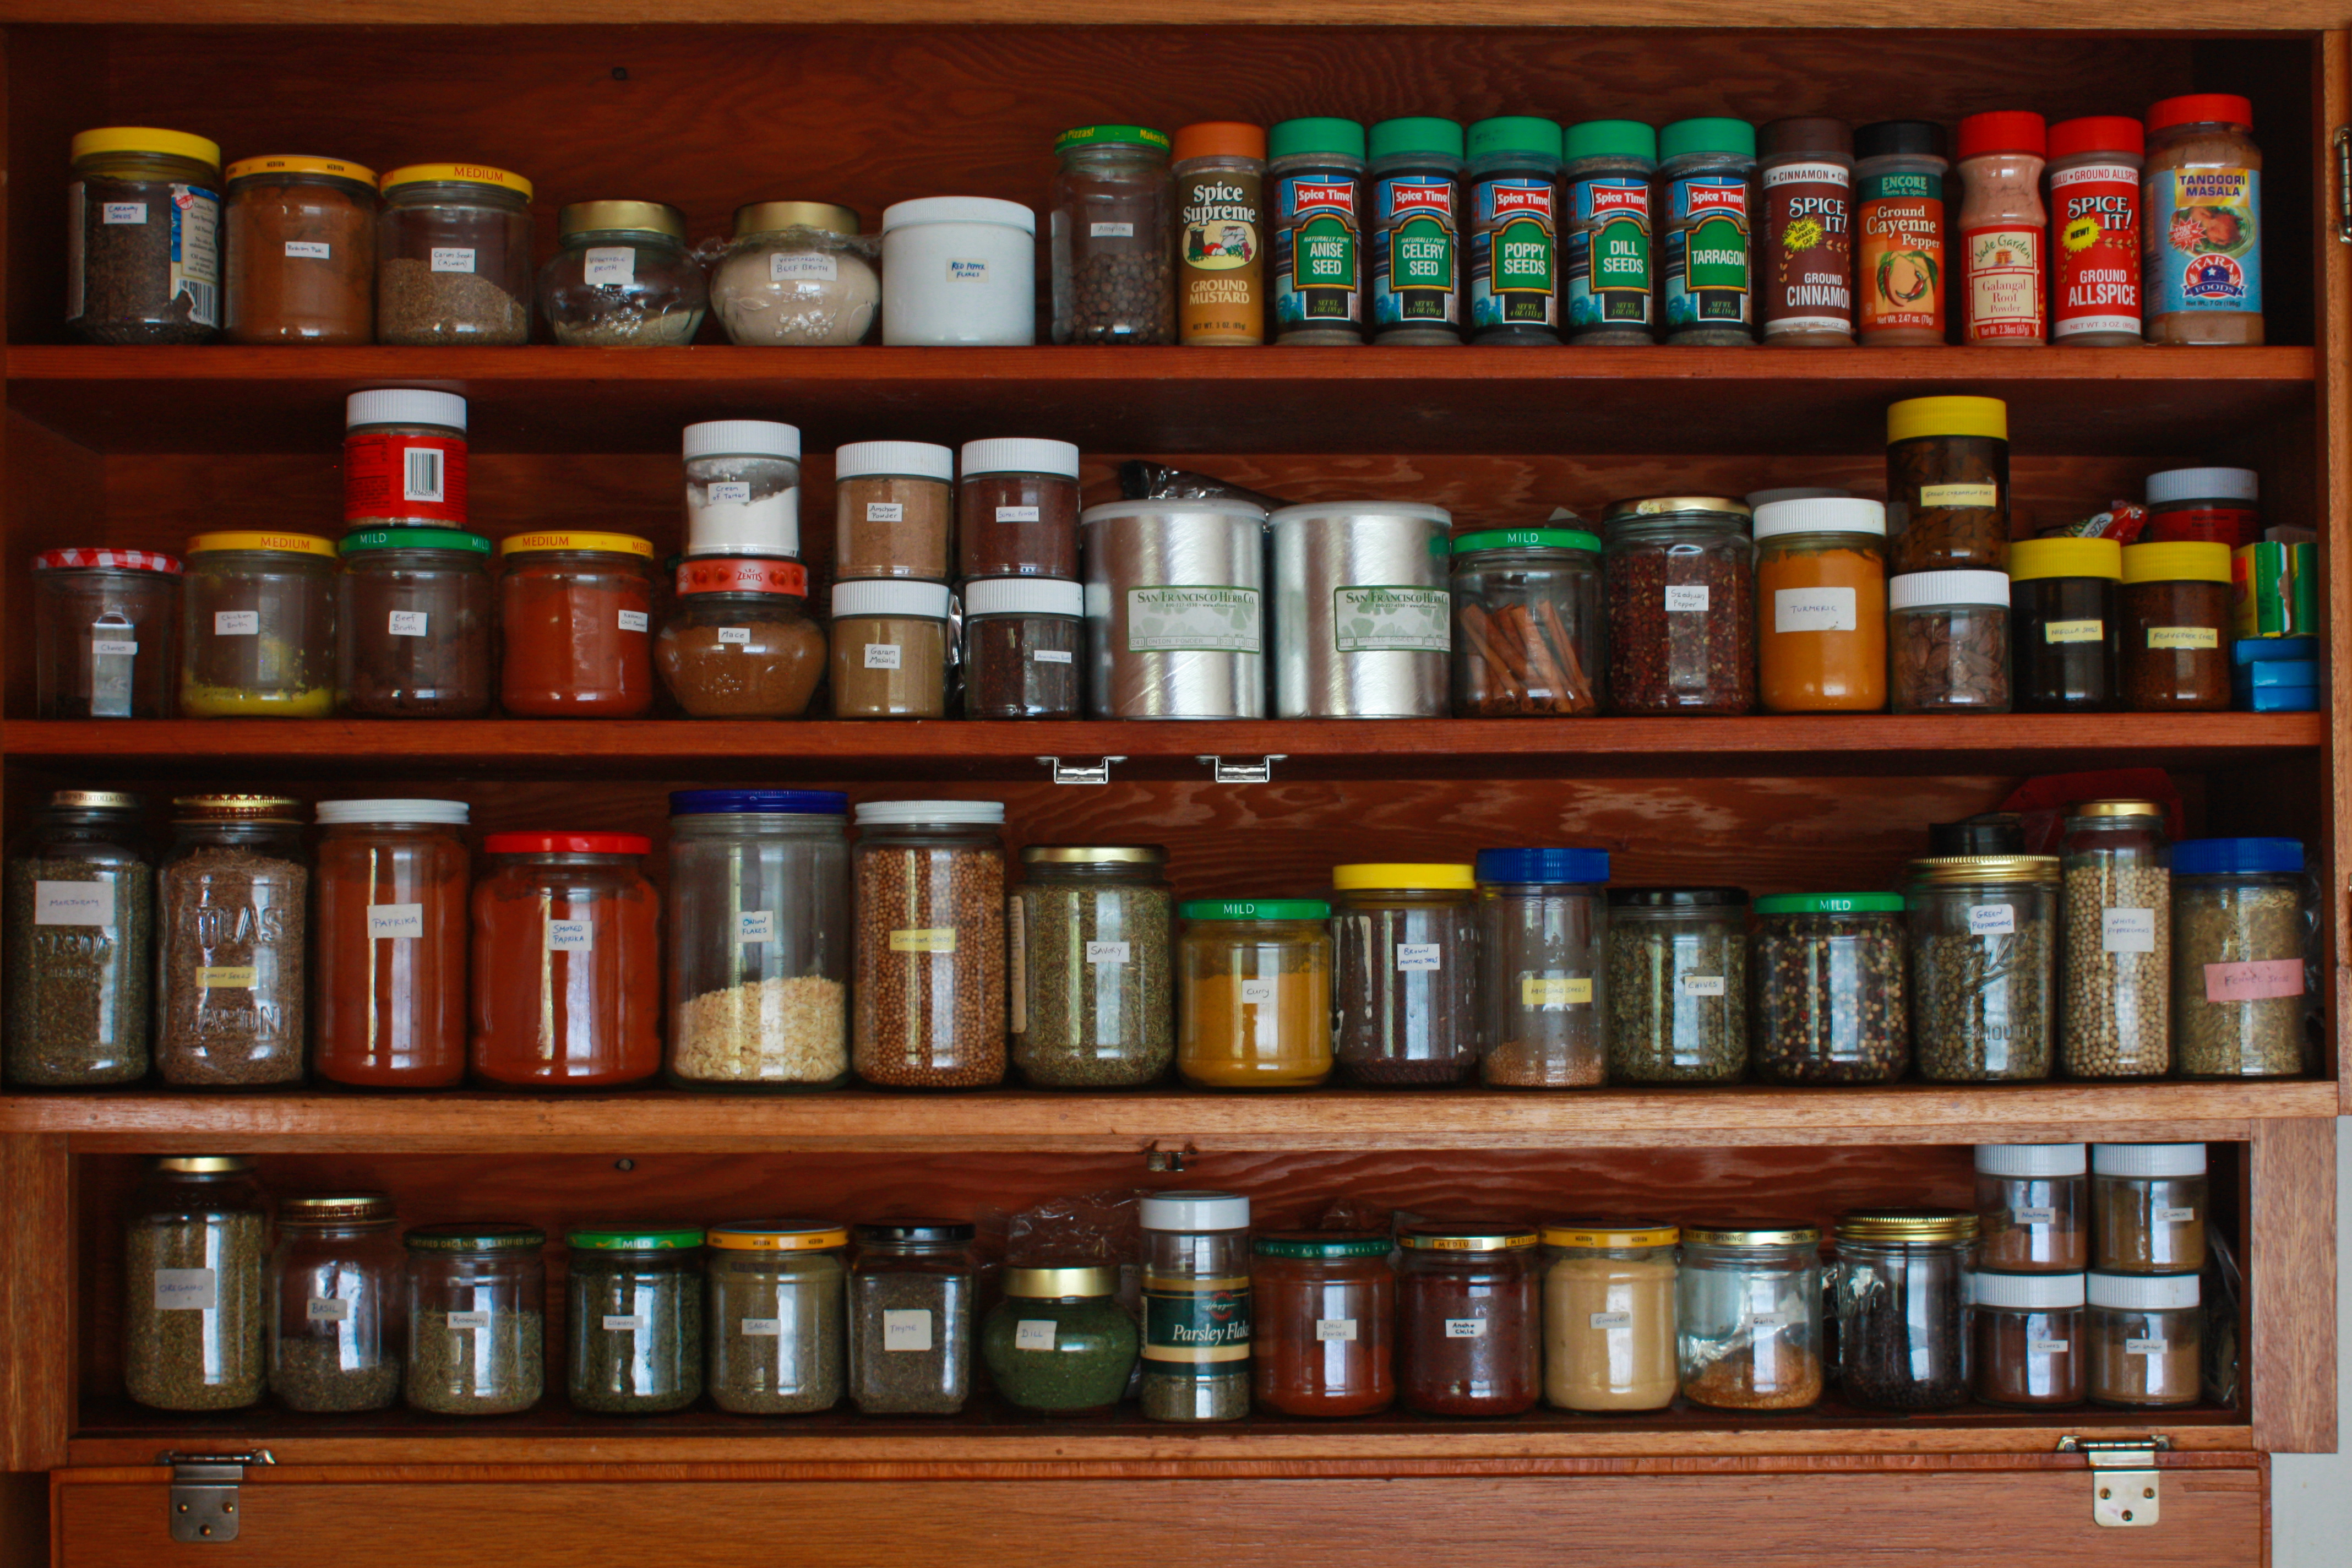 Kimberly's Spice Rack